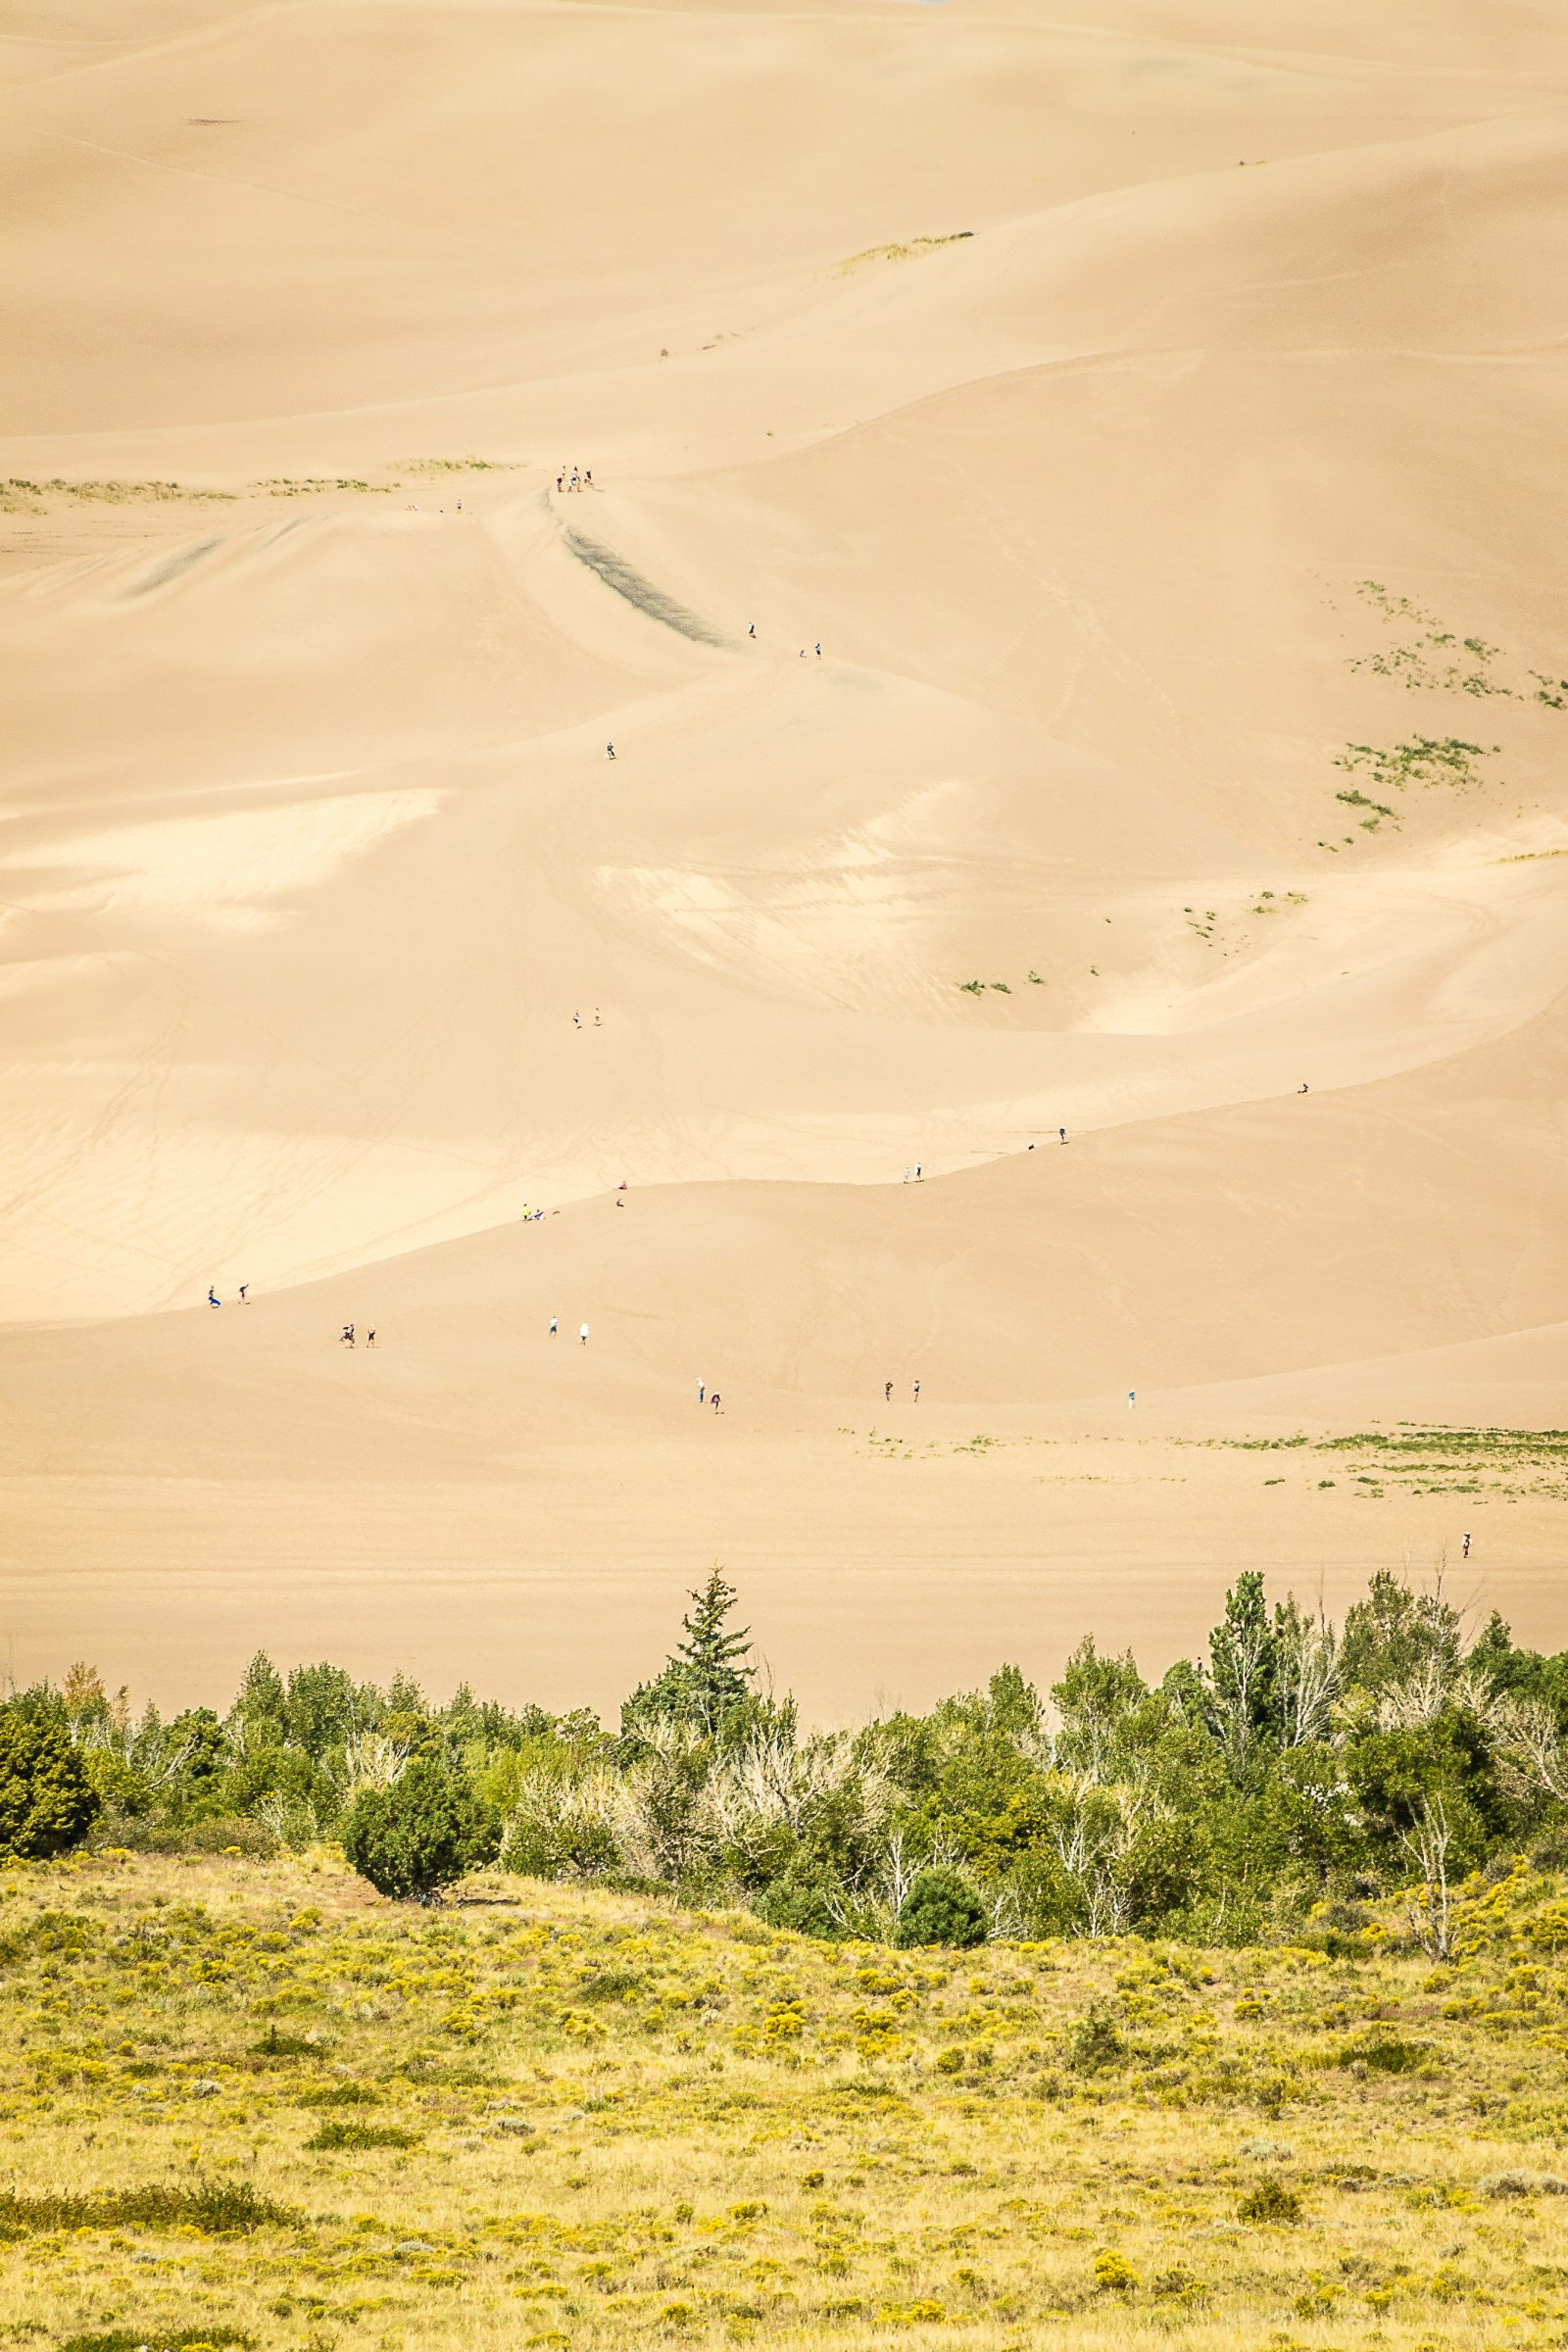 Sand Dune Hiking in the Rockies 2